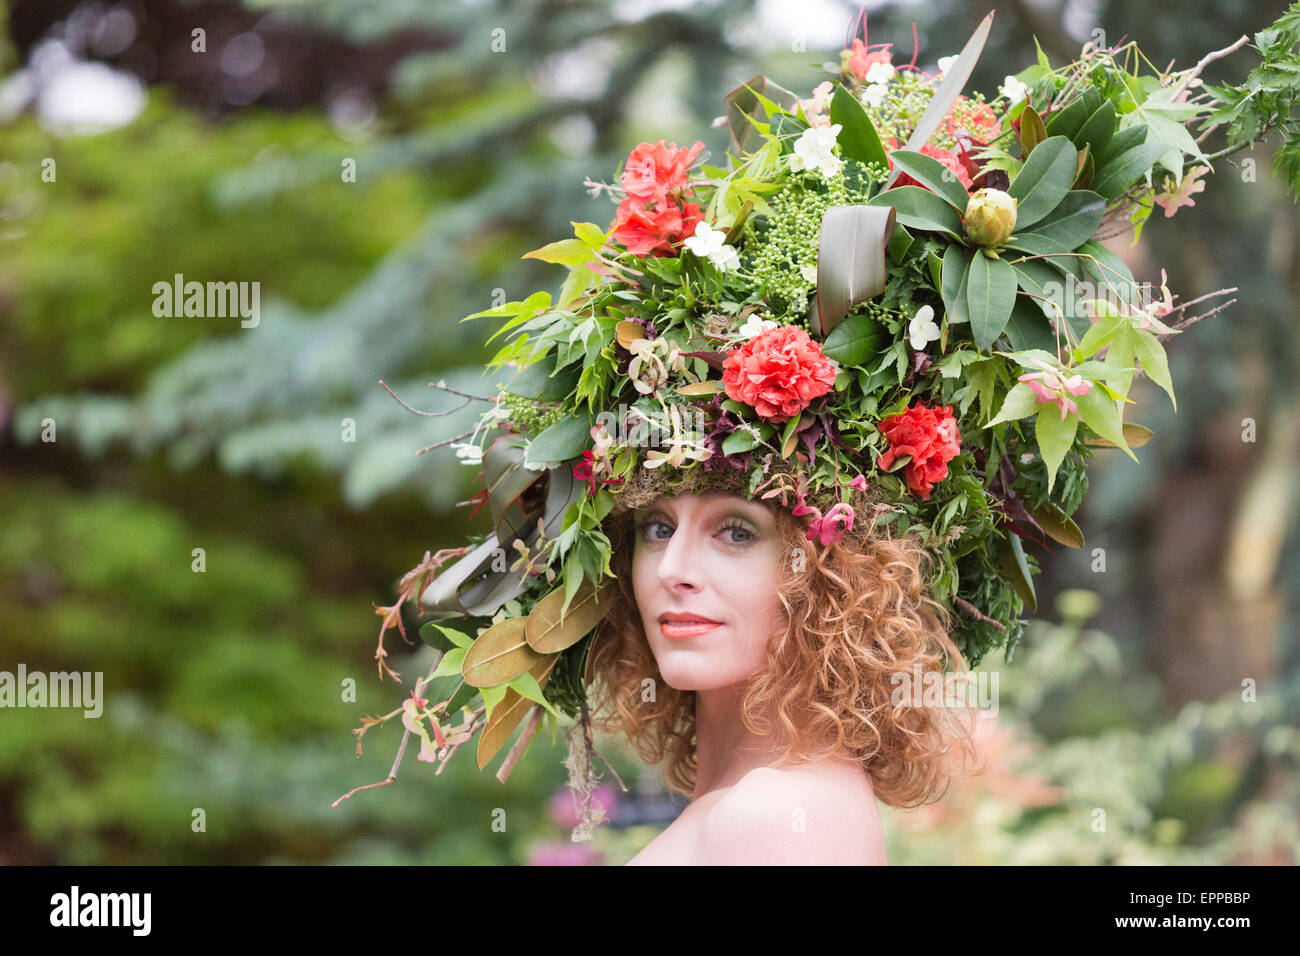 RHS Chelsea Flower Show, portrait of a model with a large floral headdress at the Hillier Nurseries tradestand Stock Photo